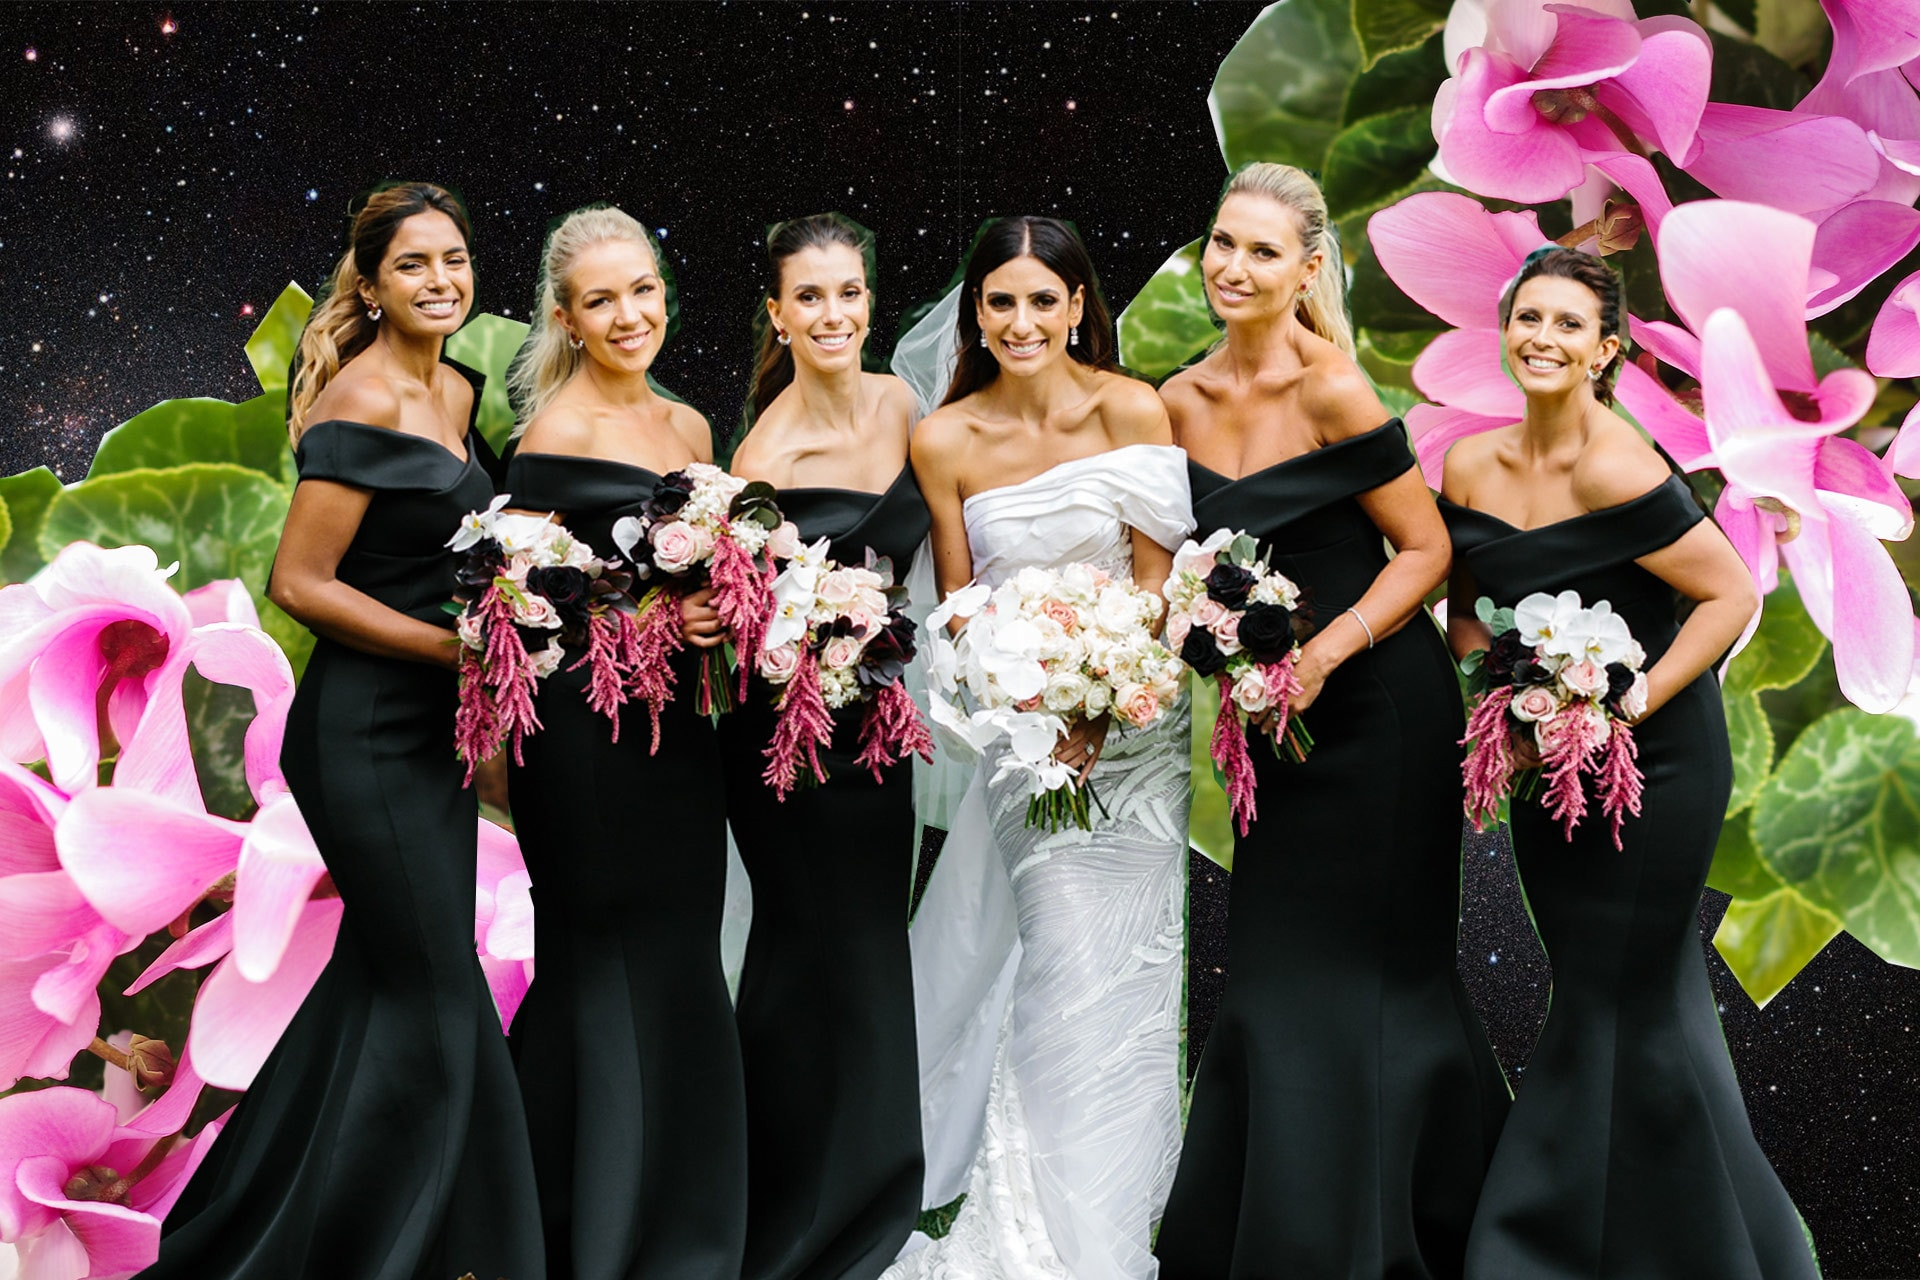 This is how to assign your bridemaids' duties based on their star sign